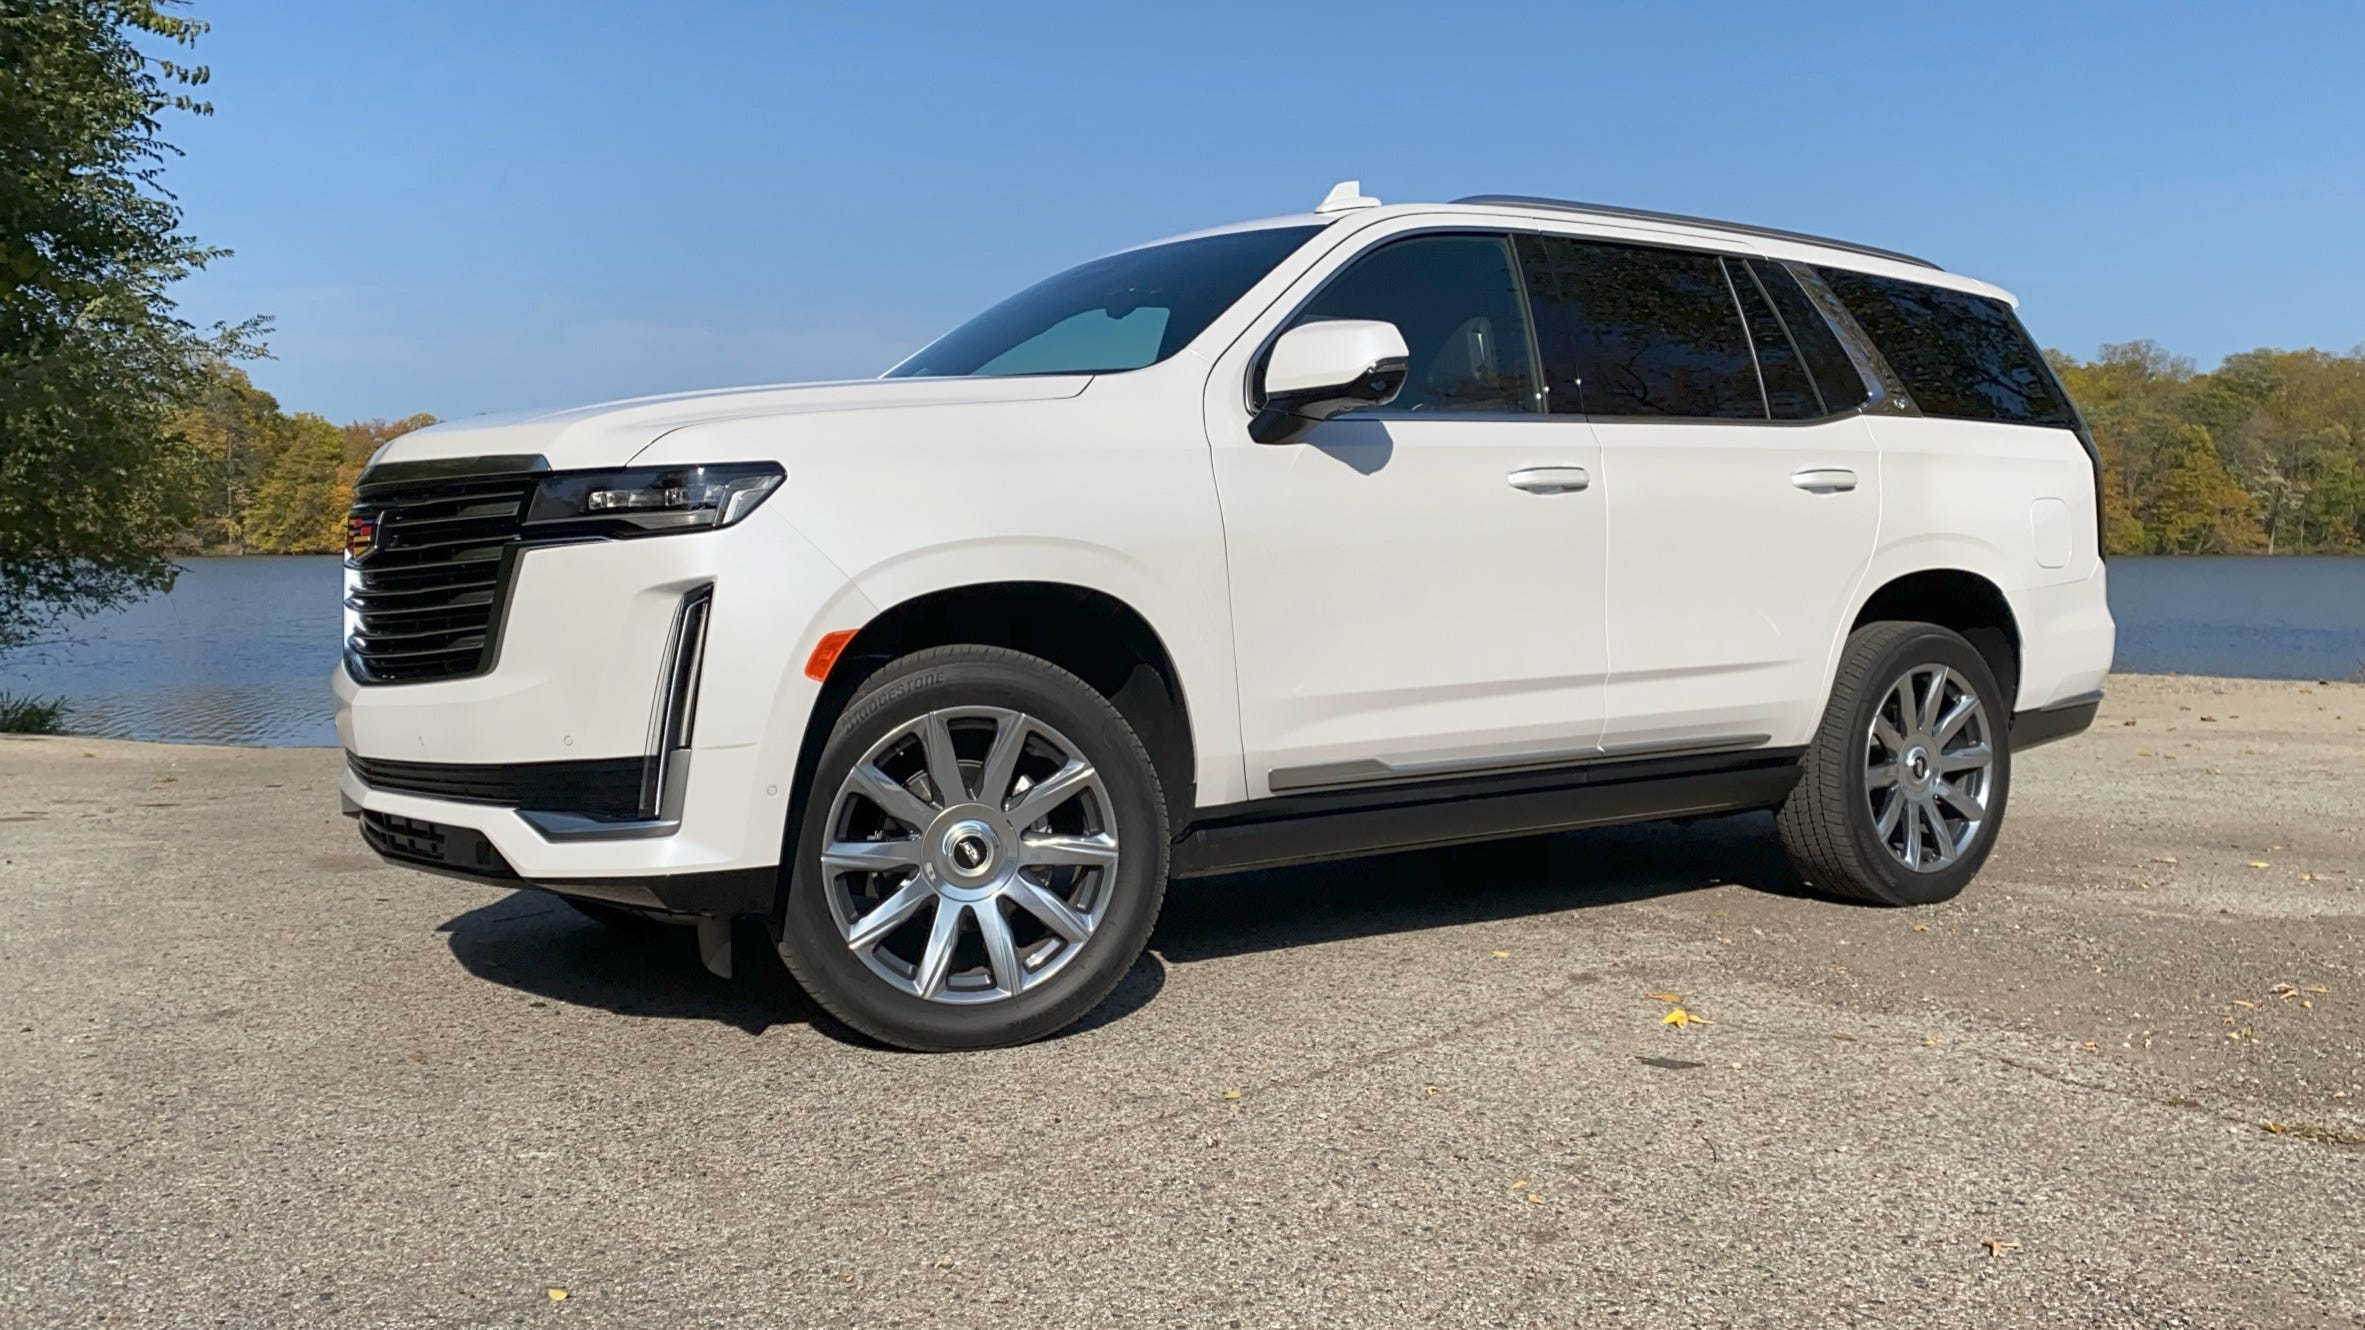 2021 Cadillac Escalade's features and tech propel luxury SUV to leadership